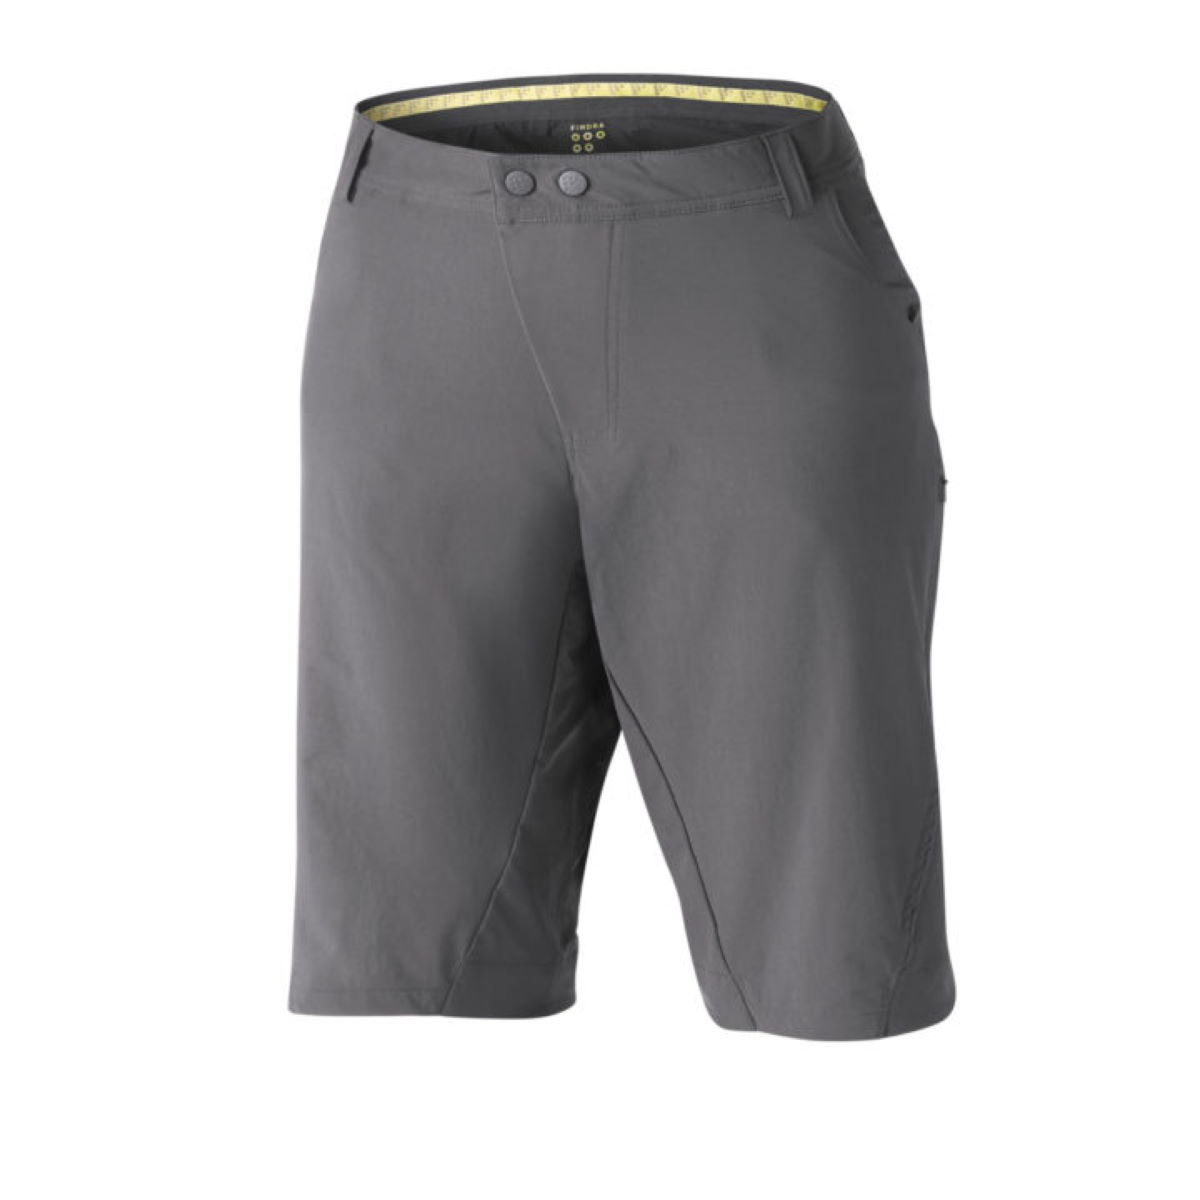 Short Femme FINDRA Relaxed - 16 Nine Irons  Shorts amples